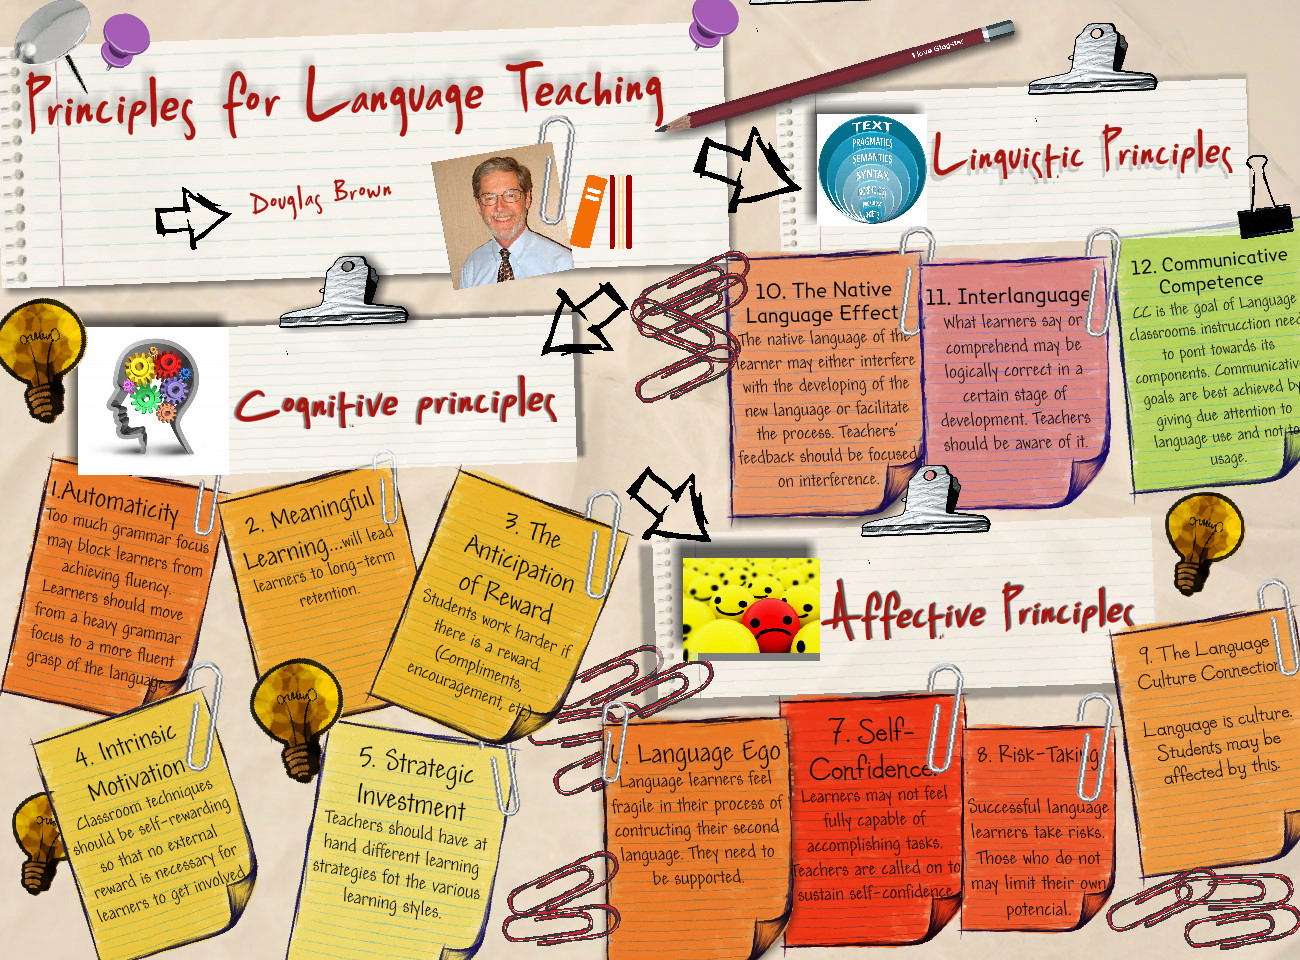 Principles for Language Teaching